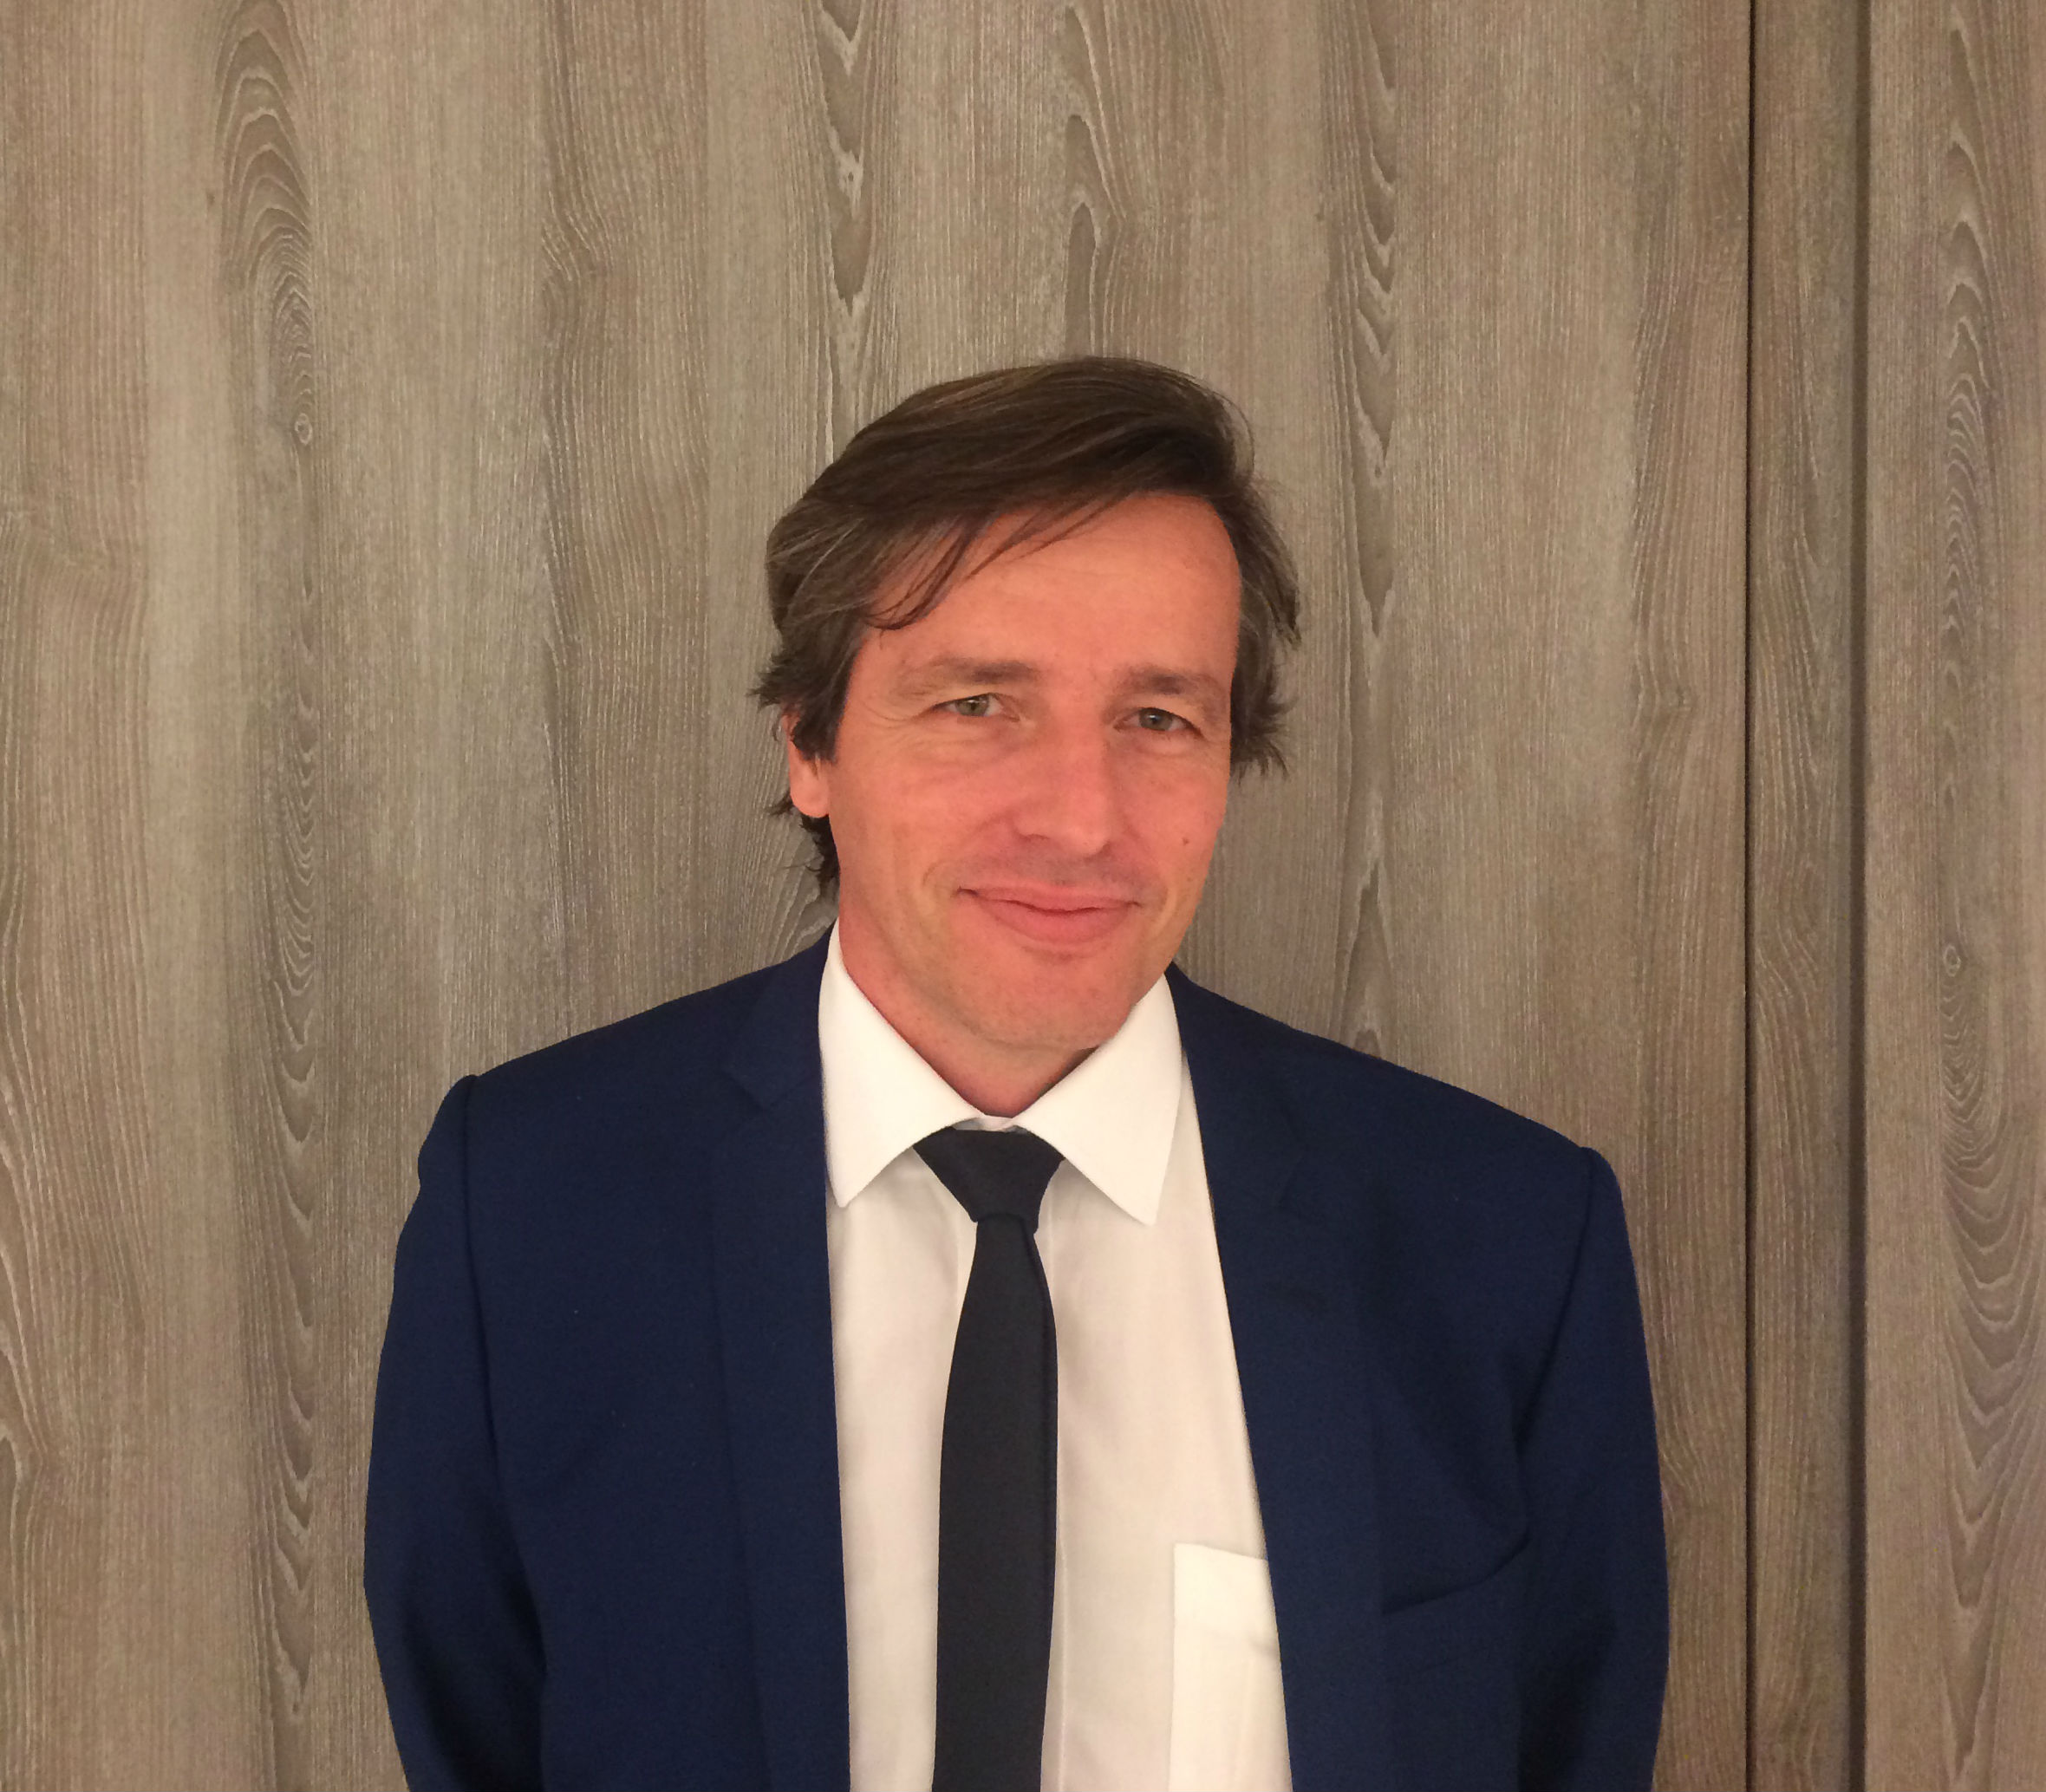 Franck Constant, president of renewables and storage investment platform Constant Energy, will be speaking at the Solar and Off-Grid Renewables Southeast Asia conference in Bangkok on 20-21 November. Credit: Tom Kenning